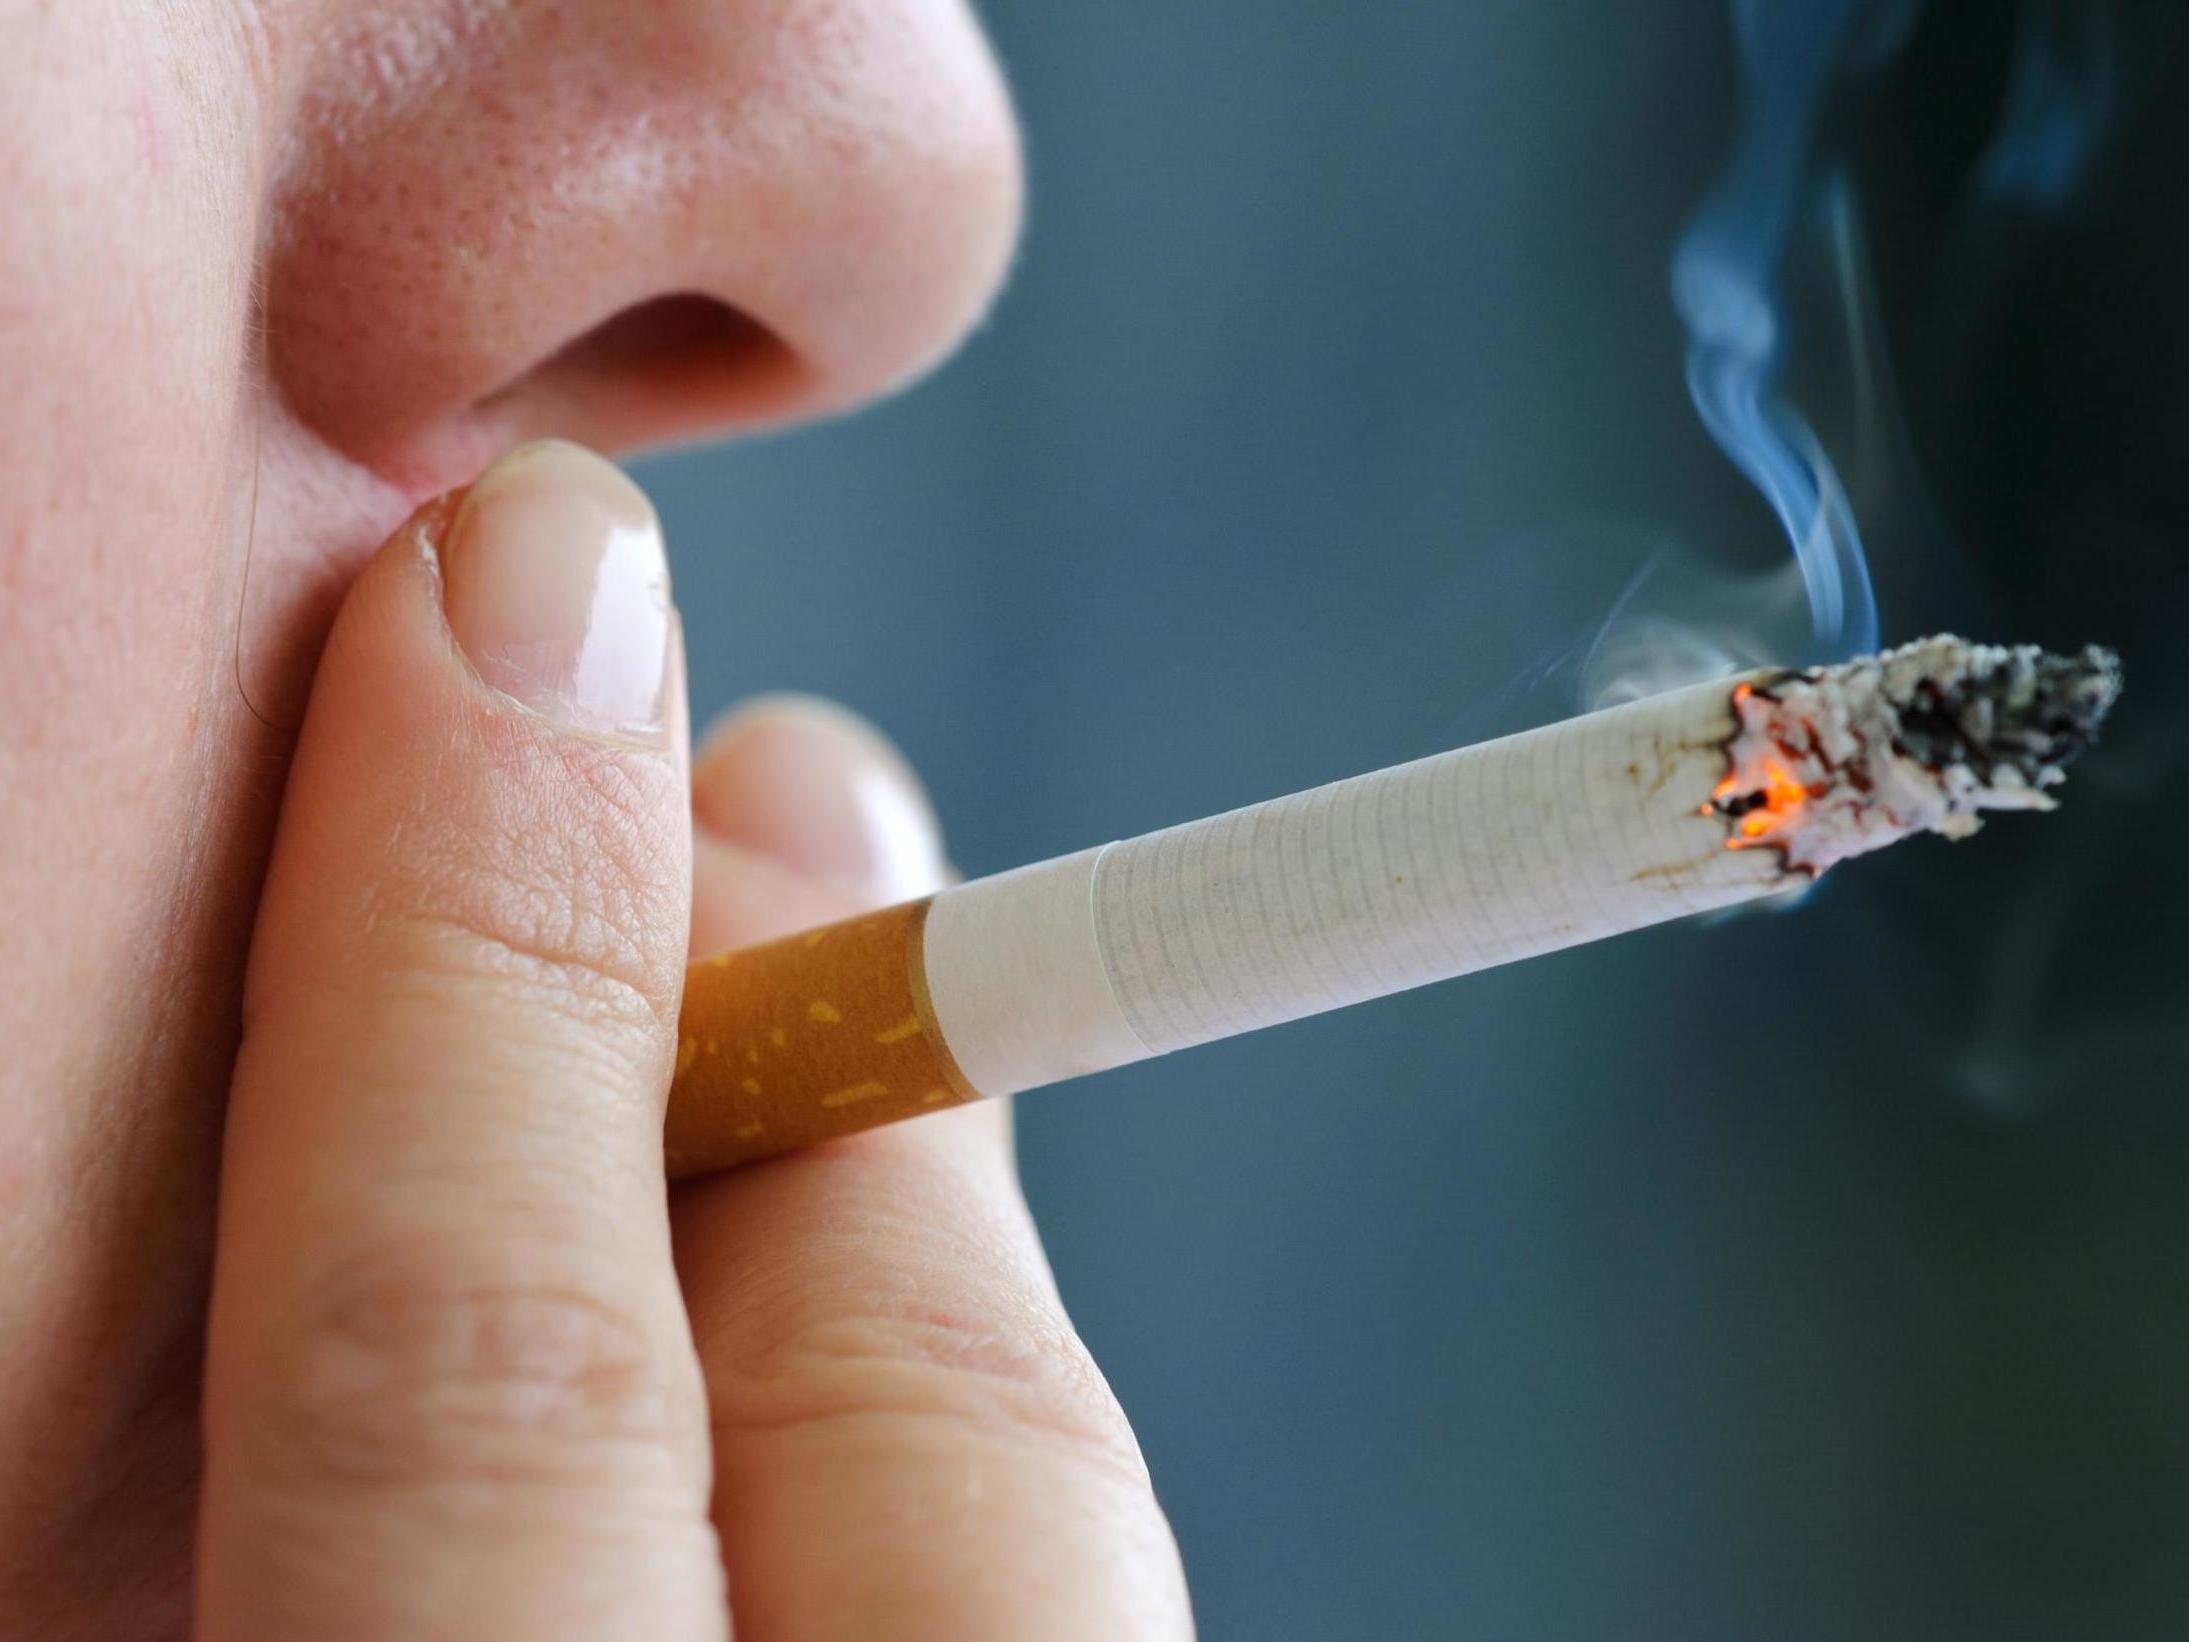 cigarettes latest news breaking stories and comment the independent